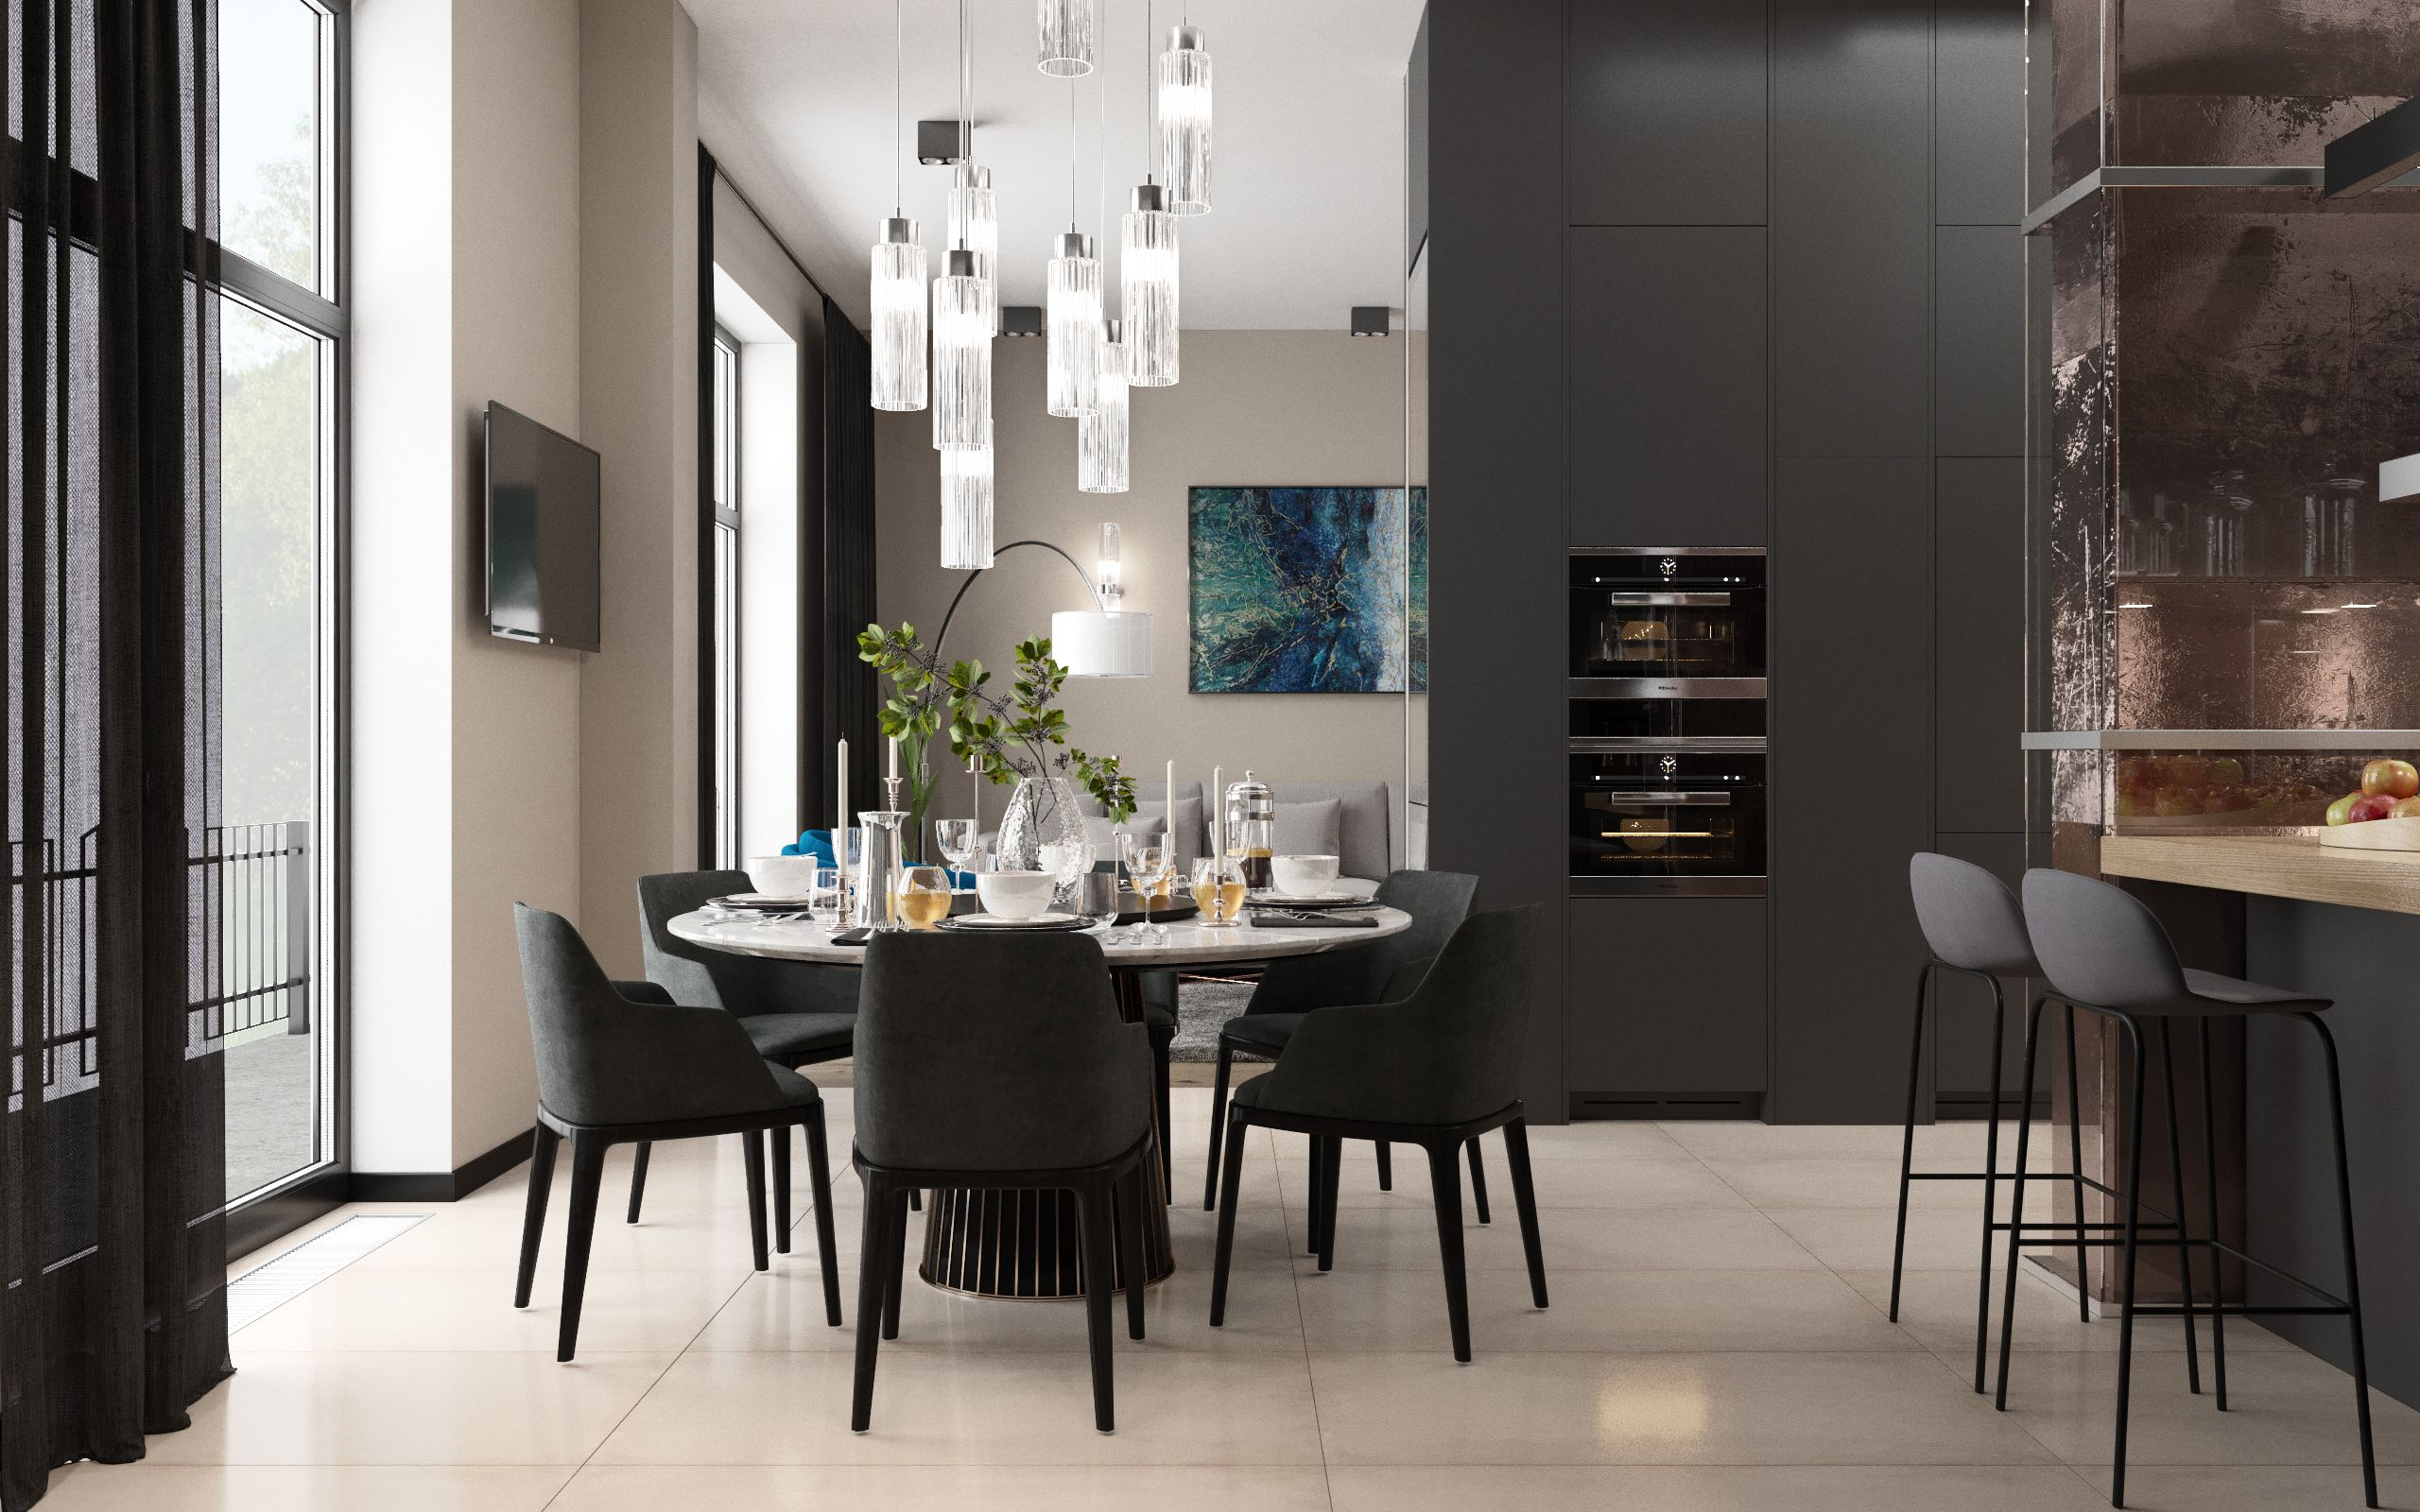 Presentation of a stylish apartment design project in video format